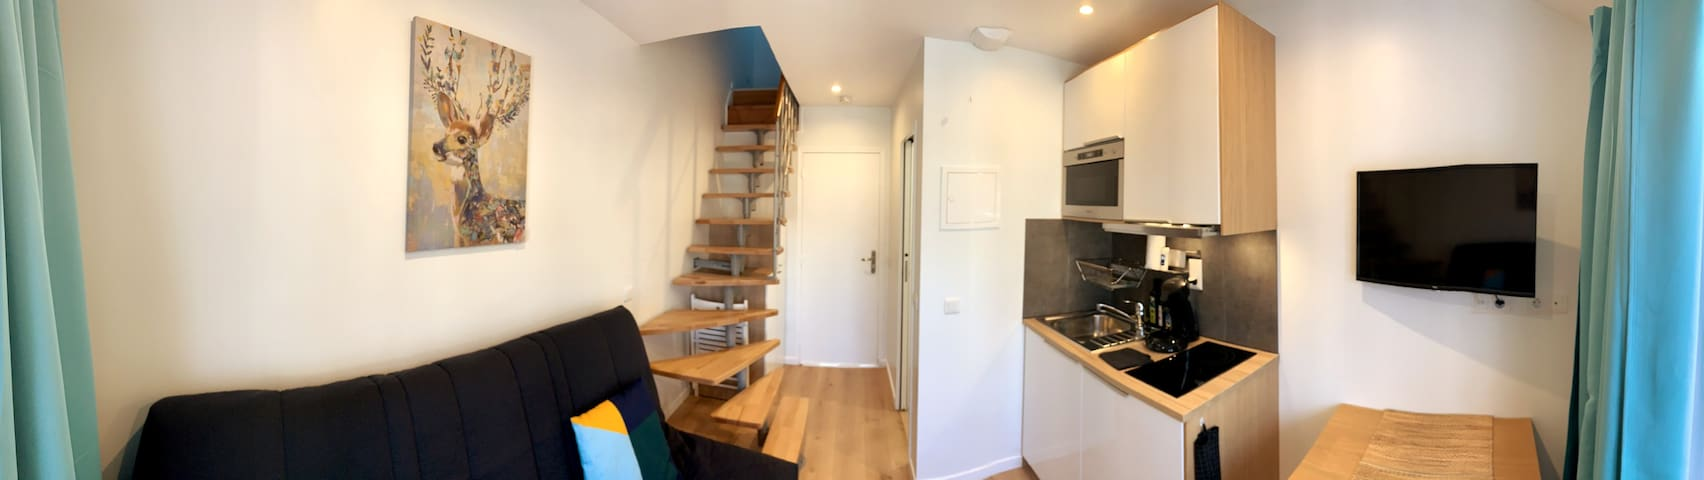 Cosy duplex.RER: 600m, Chatelet:29 min,Orly:20 min